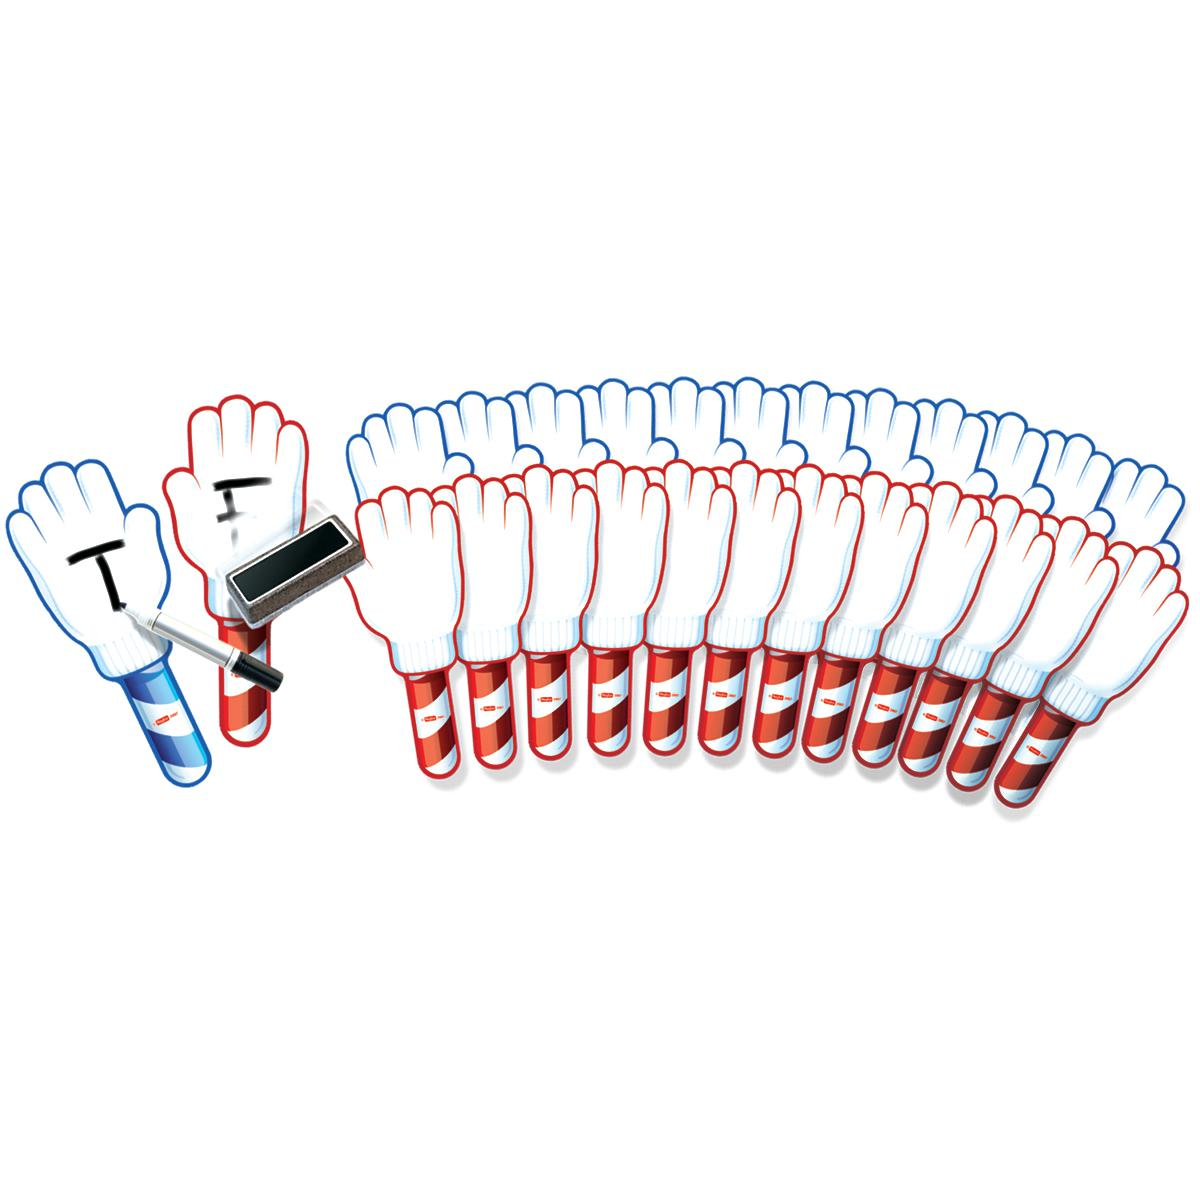 Hands Up Dry-Erase Answer Boards